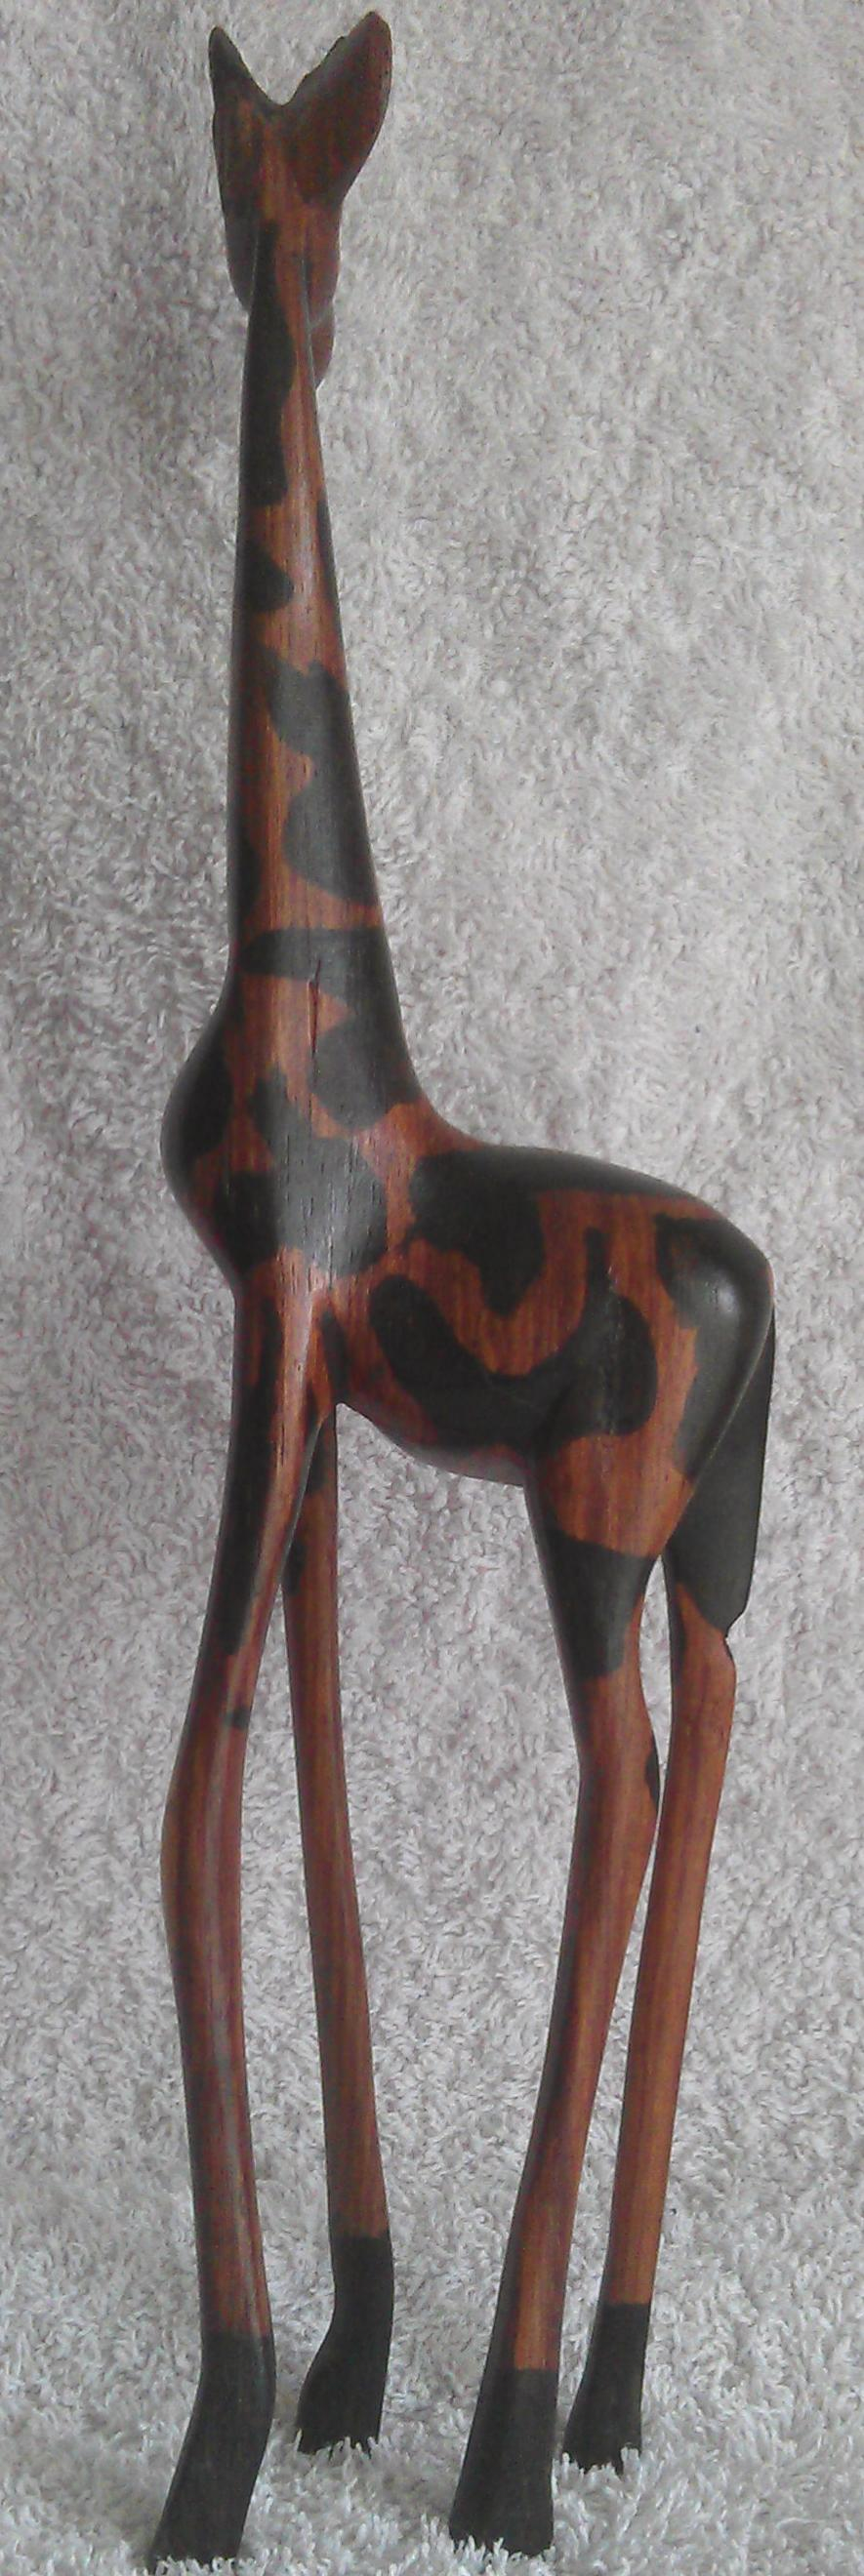 "Hand Carved 12.5"" Giraffe: Only £9.99 Hand"